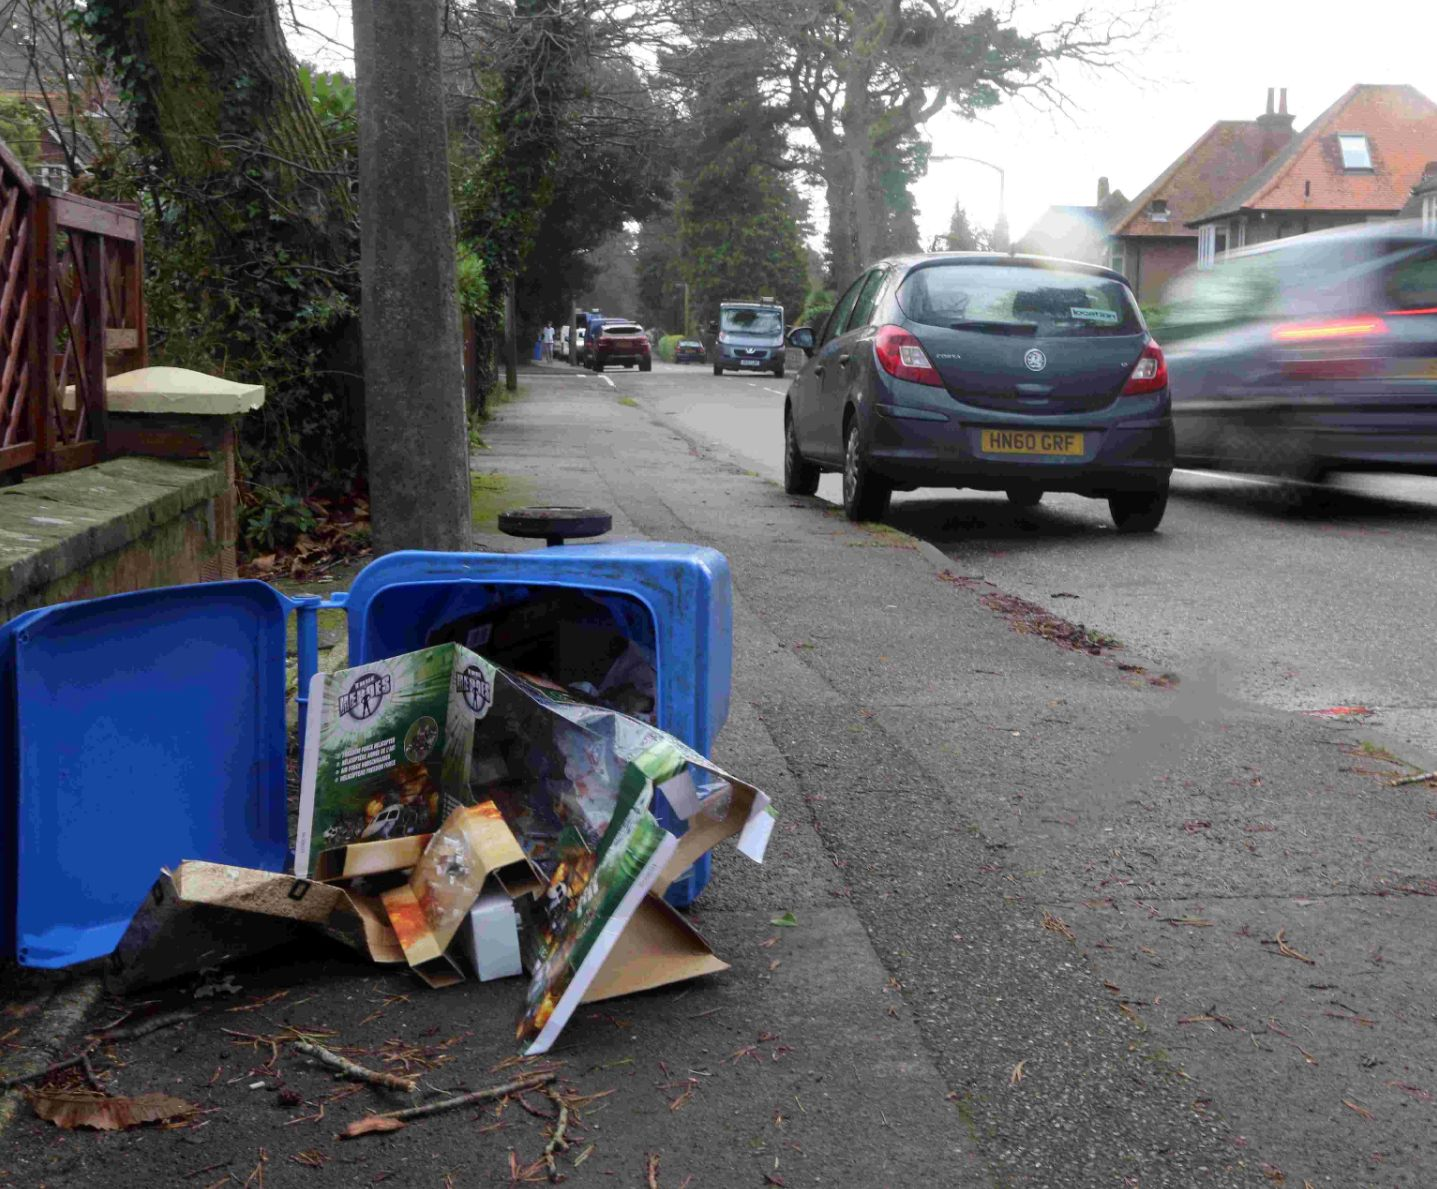 CLEAN-UP: Overflowing recycling bins in Poole